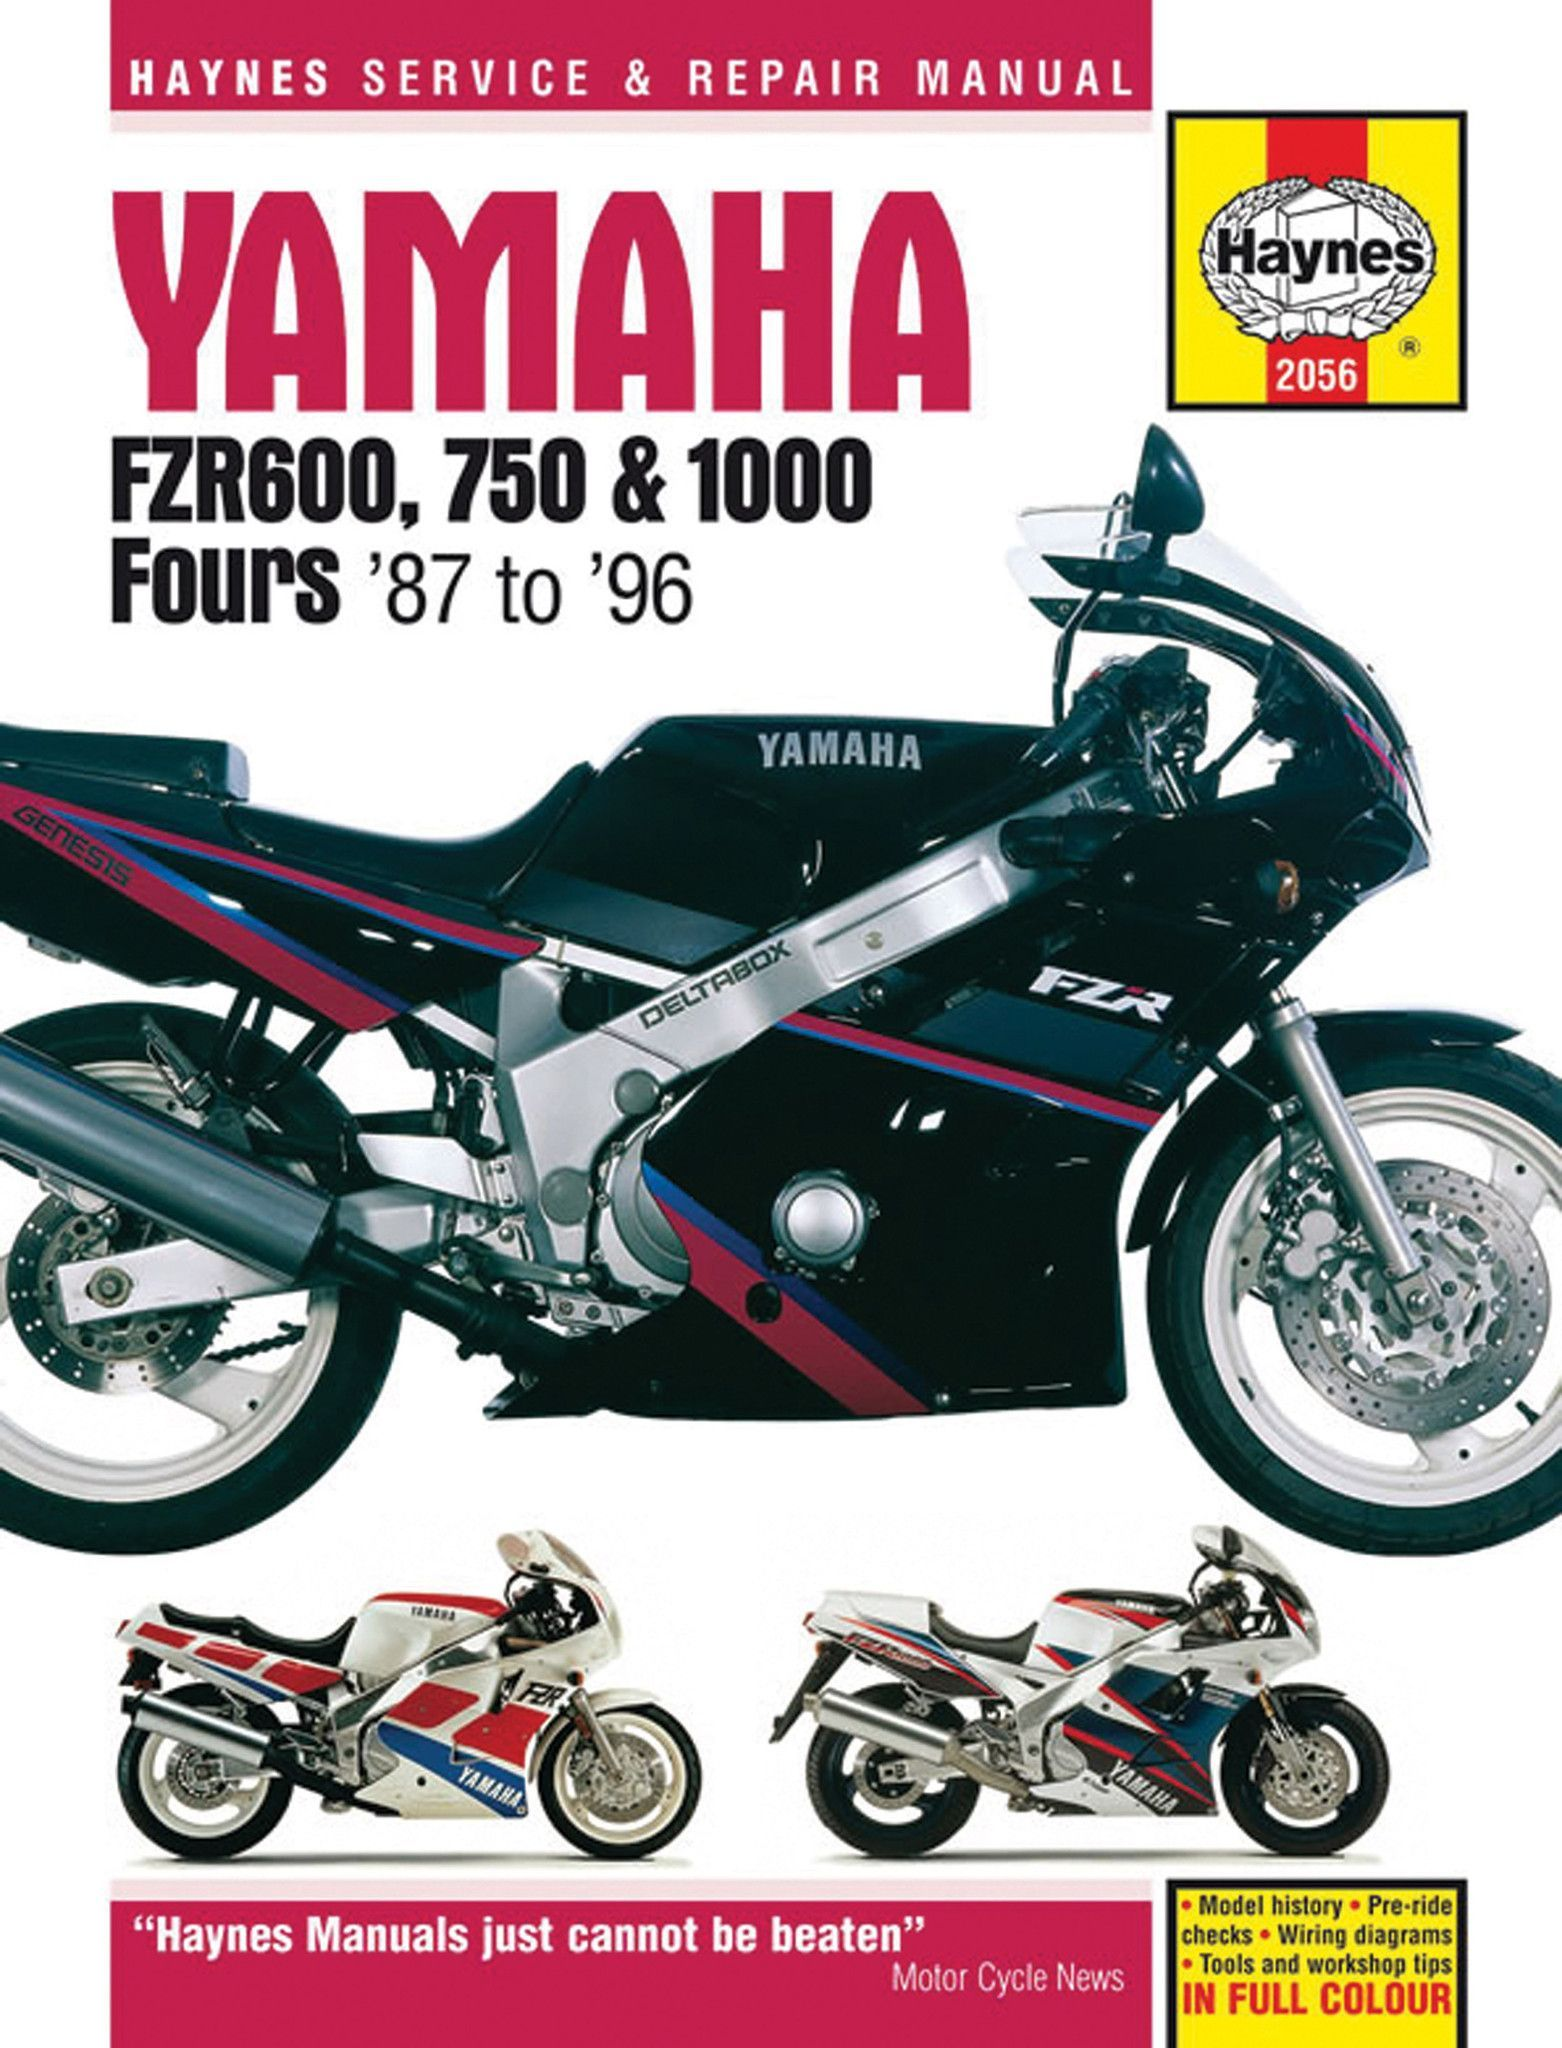 haynes m2056 service repair manual for yamaha fzr600 fzr750 rh pinterest com